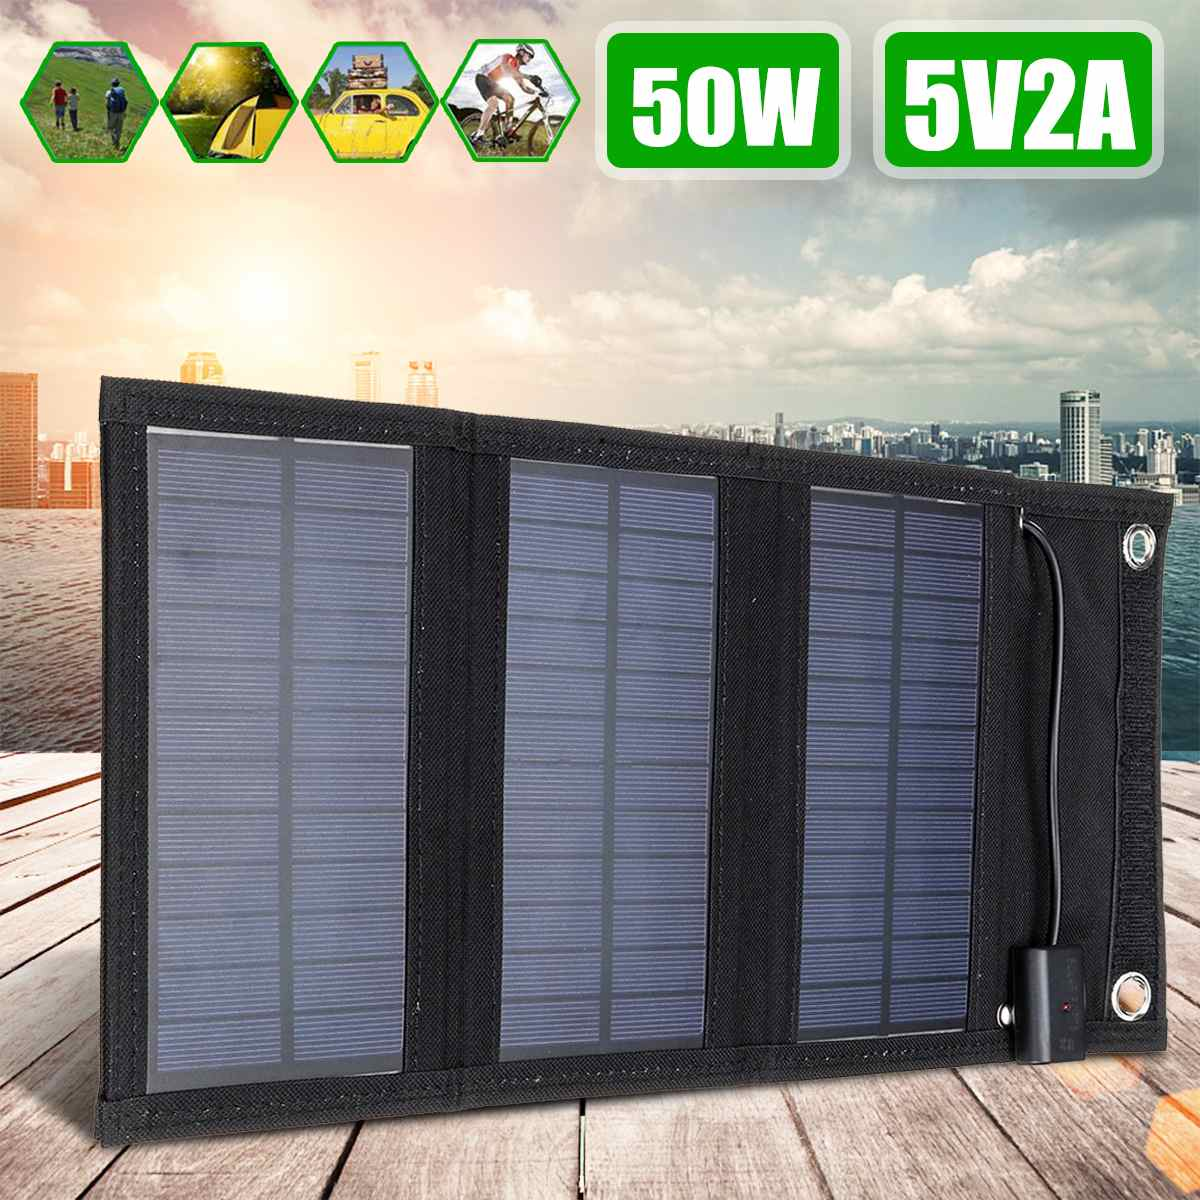 50W Foldable Solar Panel Sun Power Solar Cells 5V 2A USB Cable Portable Solar Charger Phone For Hiking Camping Phone Charge